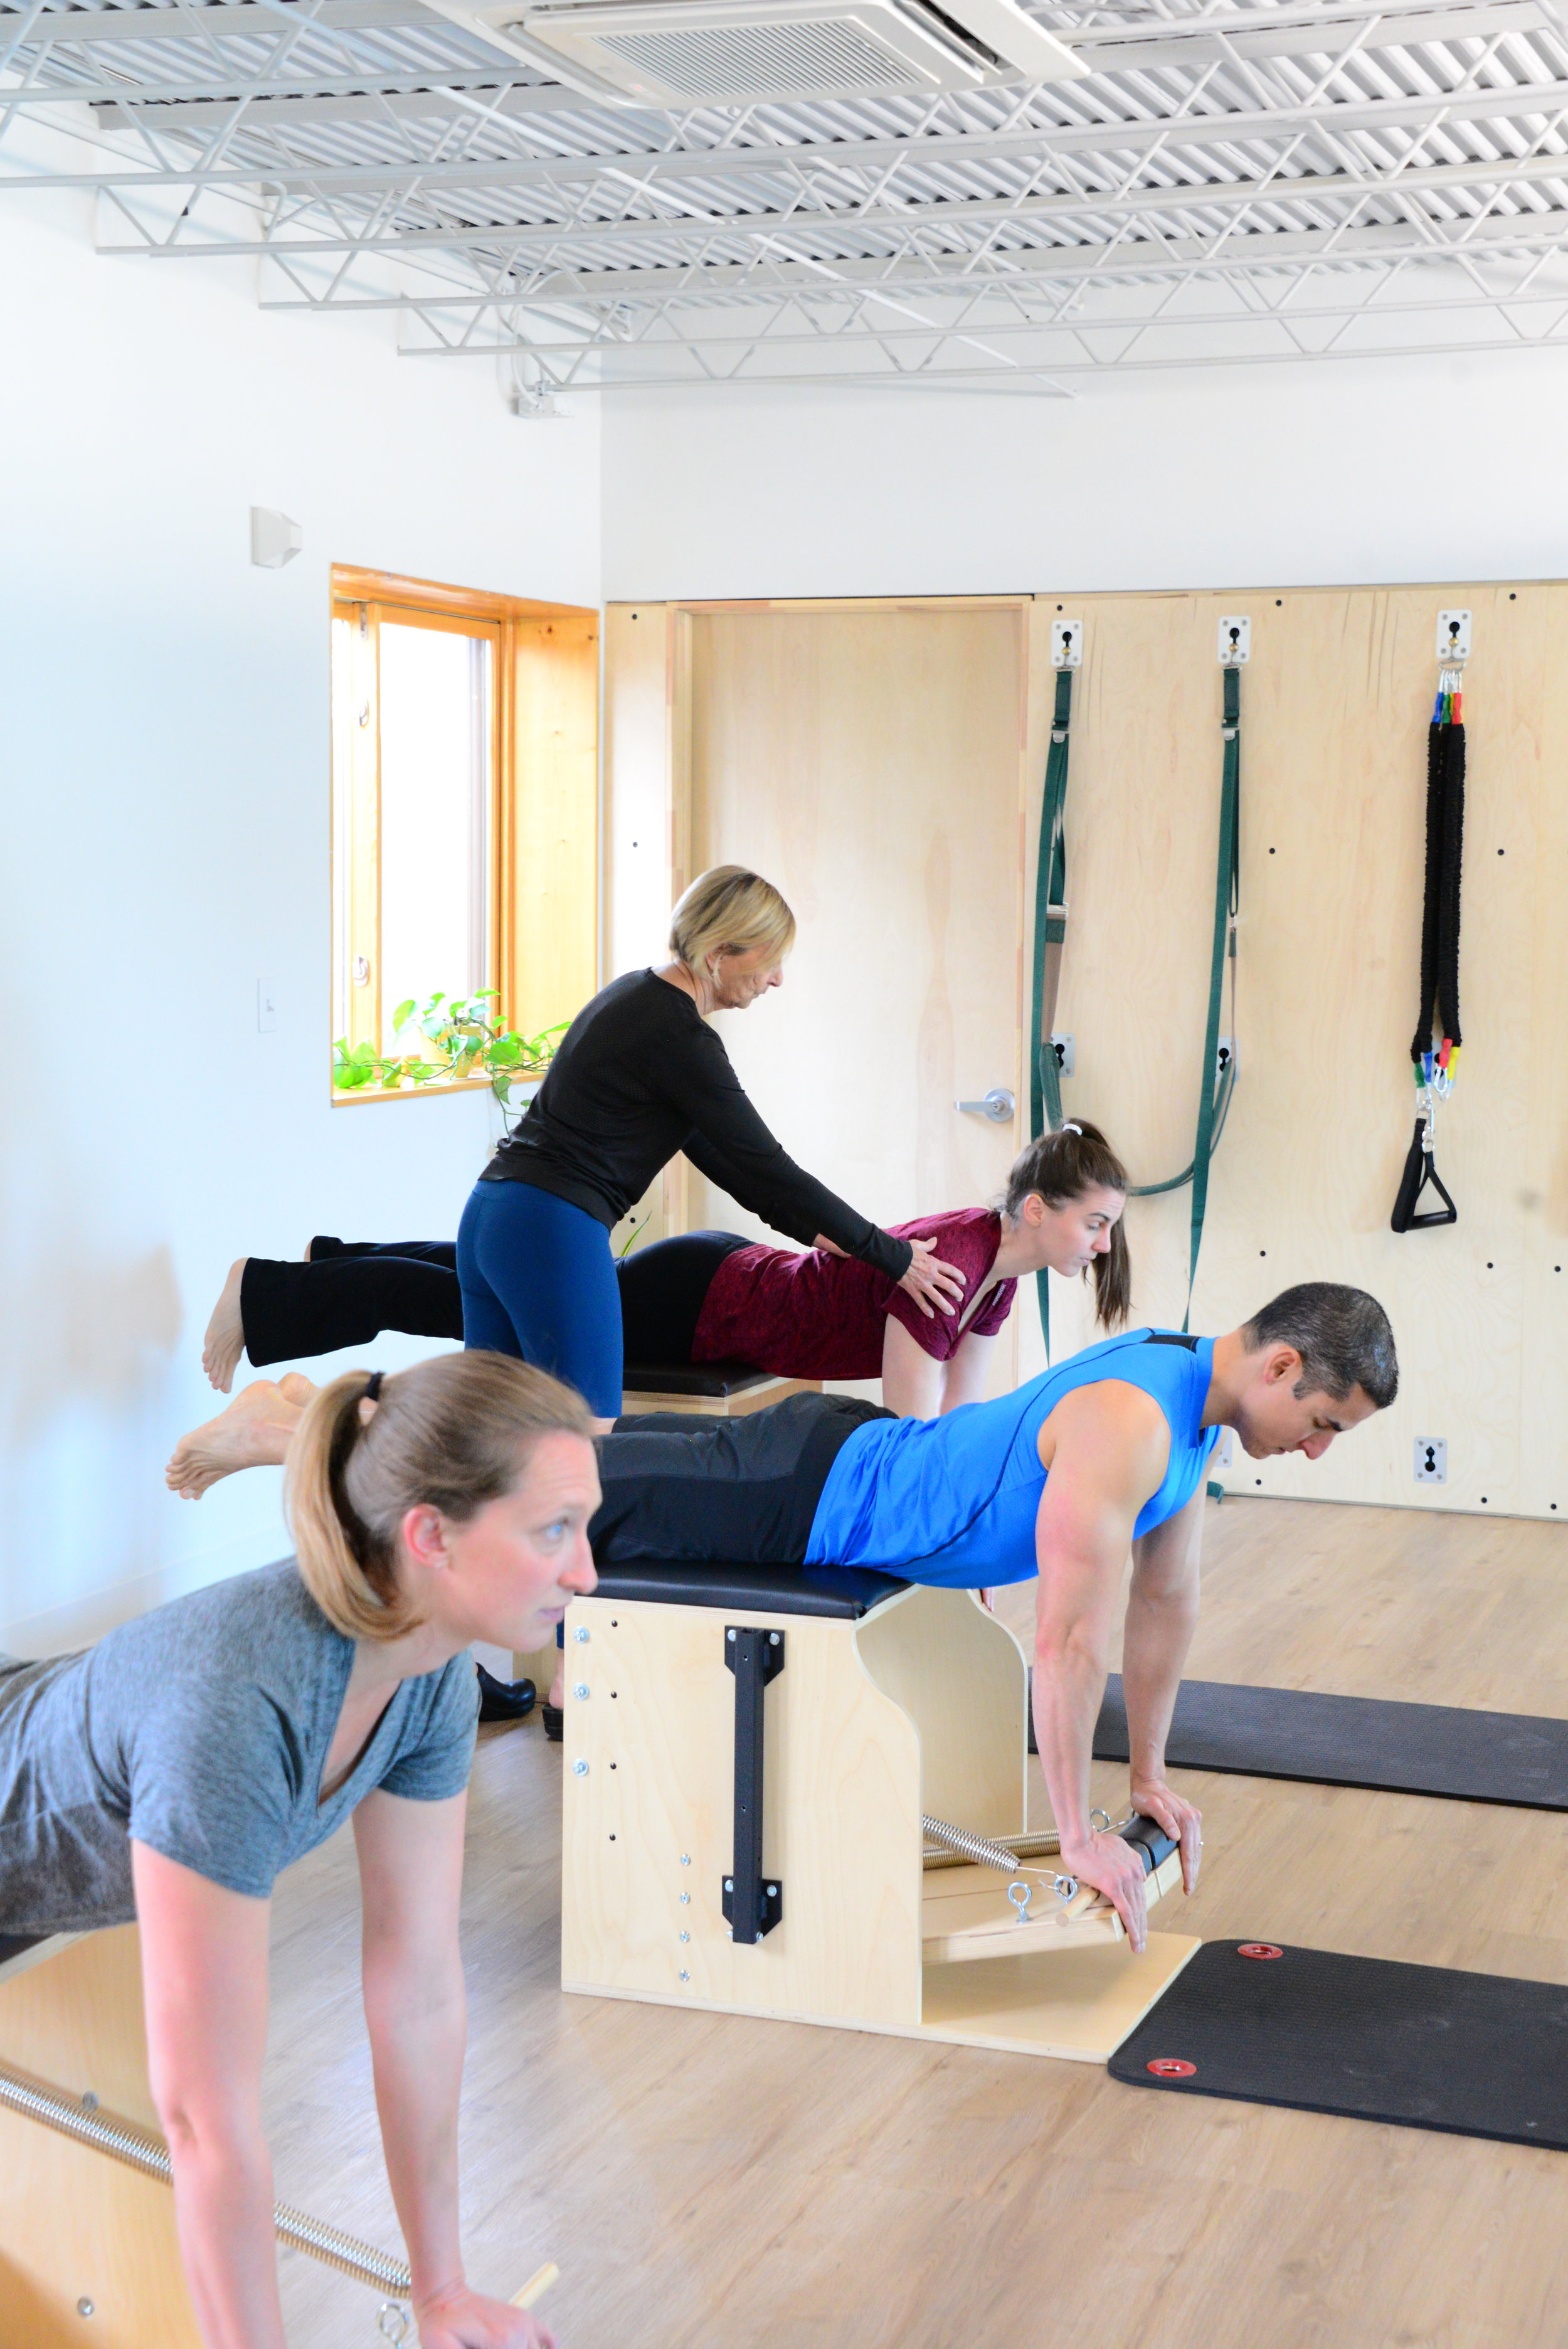 Ann is doing back extension on the chair, which is similar to using the long box on the Reformer